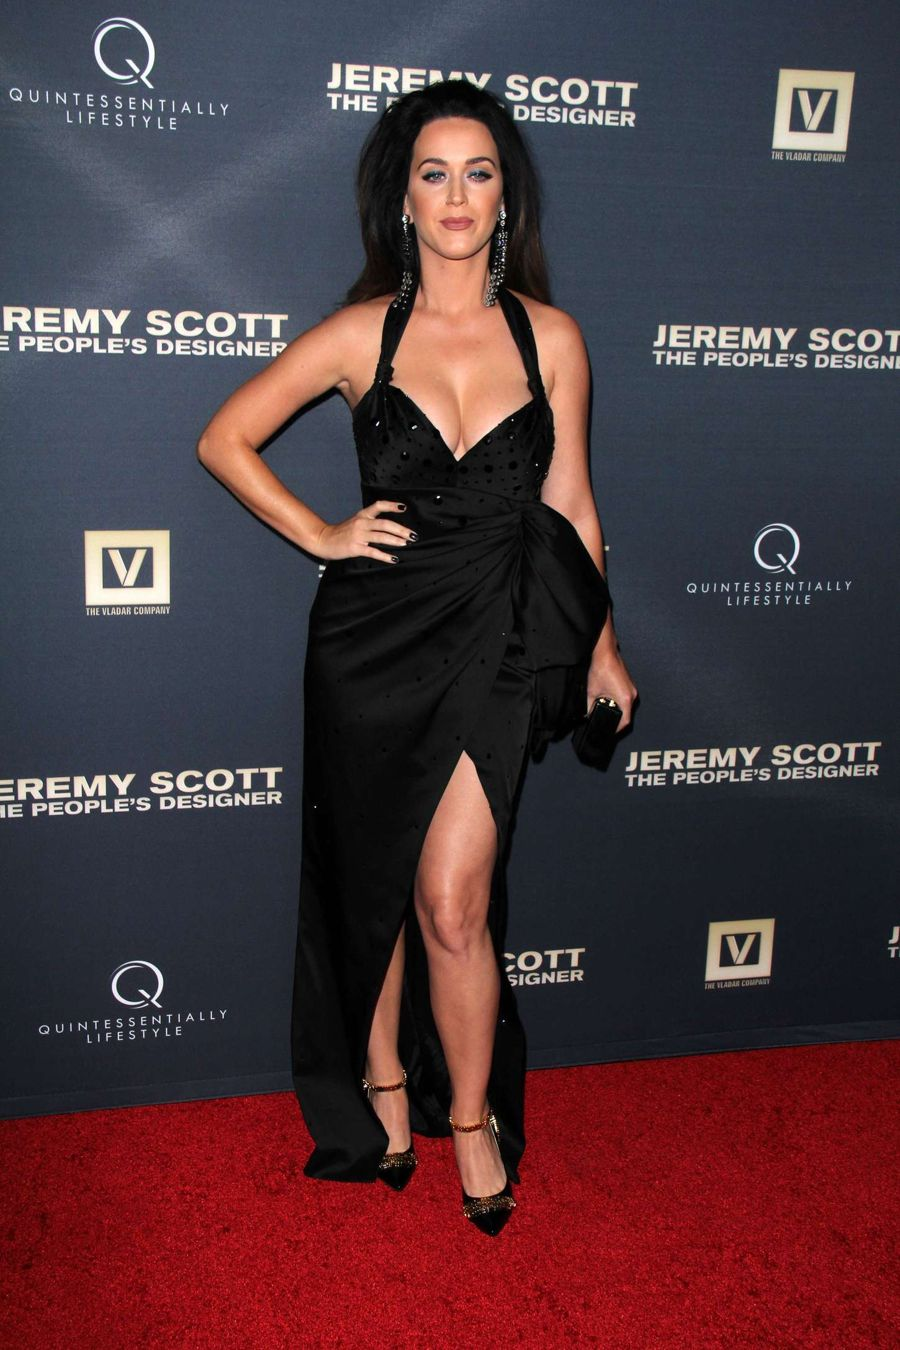 Katy Perry @ Jeremy Scott The People's Designer Premiere